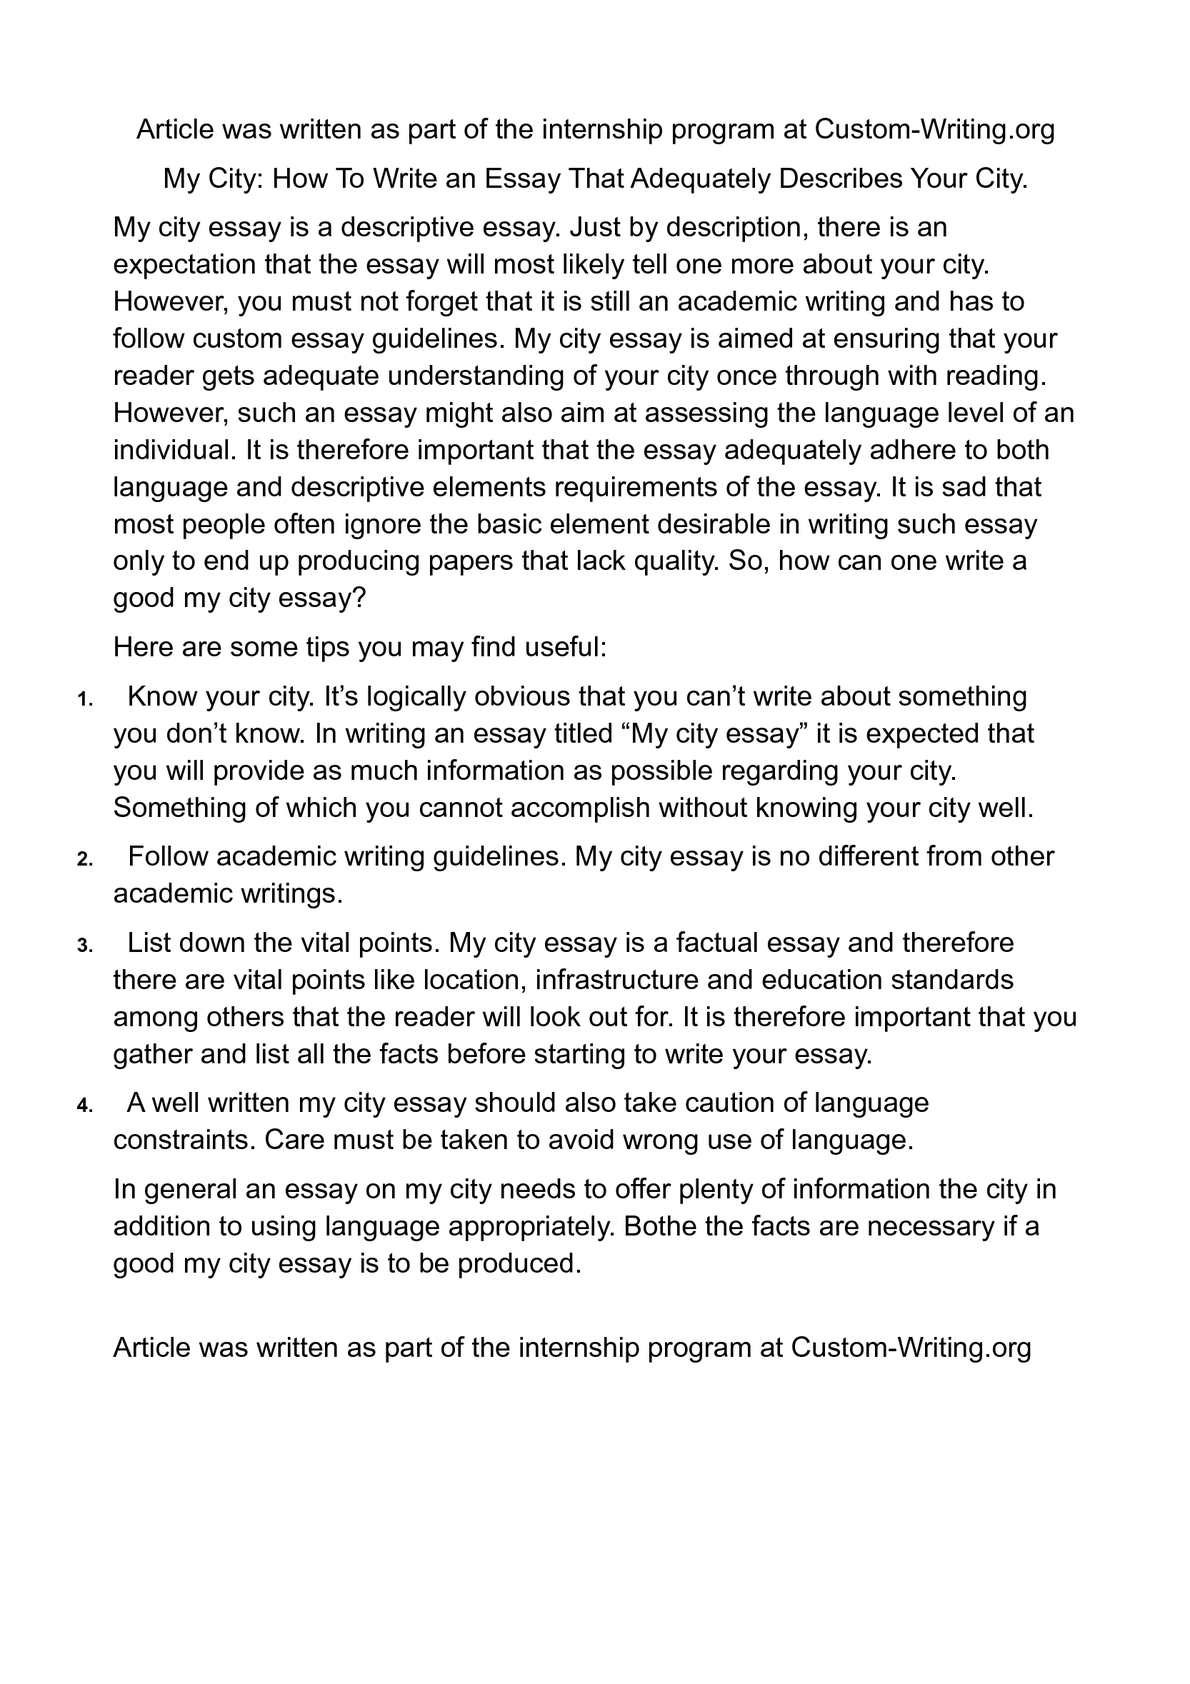 Argument Persuasive Essay Topics Good Descriptive Essays Calam Atilde Copy O My City How To Write Calam  Atilde Copy O Fate In Romeo And Juliet Essay also Stem Cell Essay Outline Good Descriptive Essay Good Descriptive Essays Calam Atilde Copy O  Opinion Essay Topics